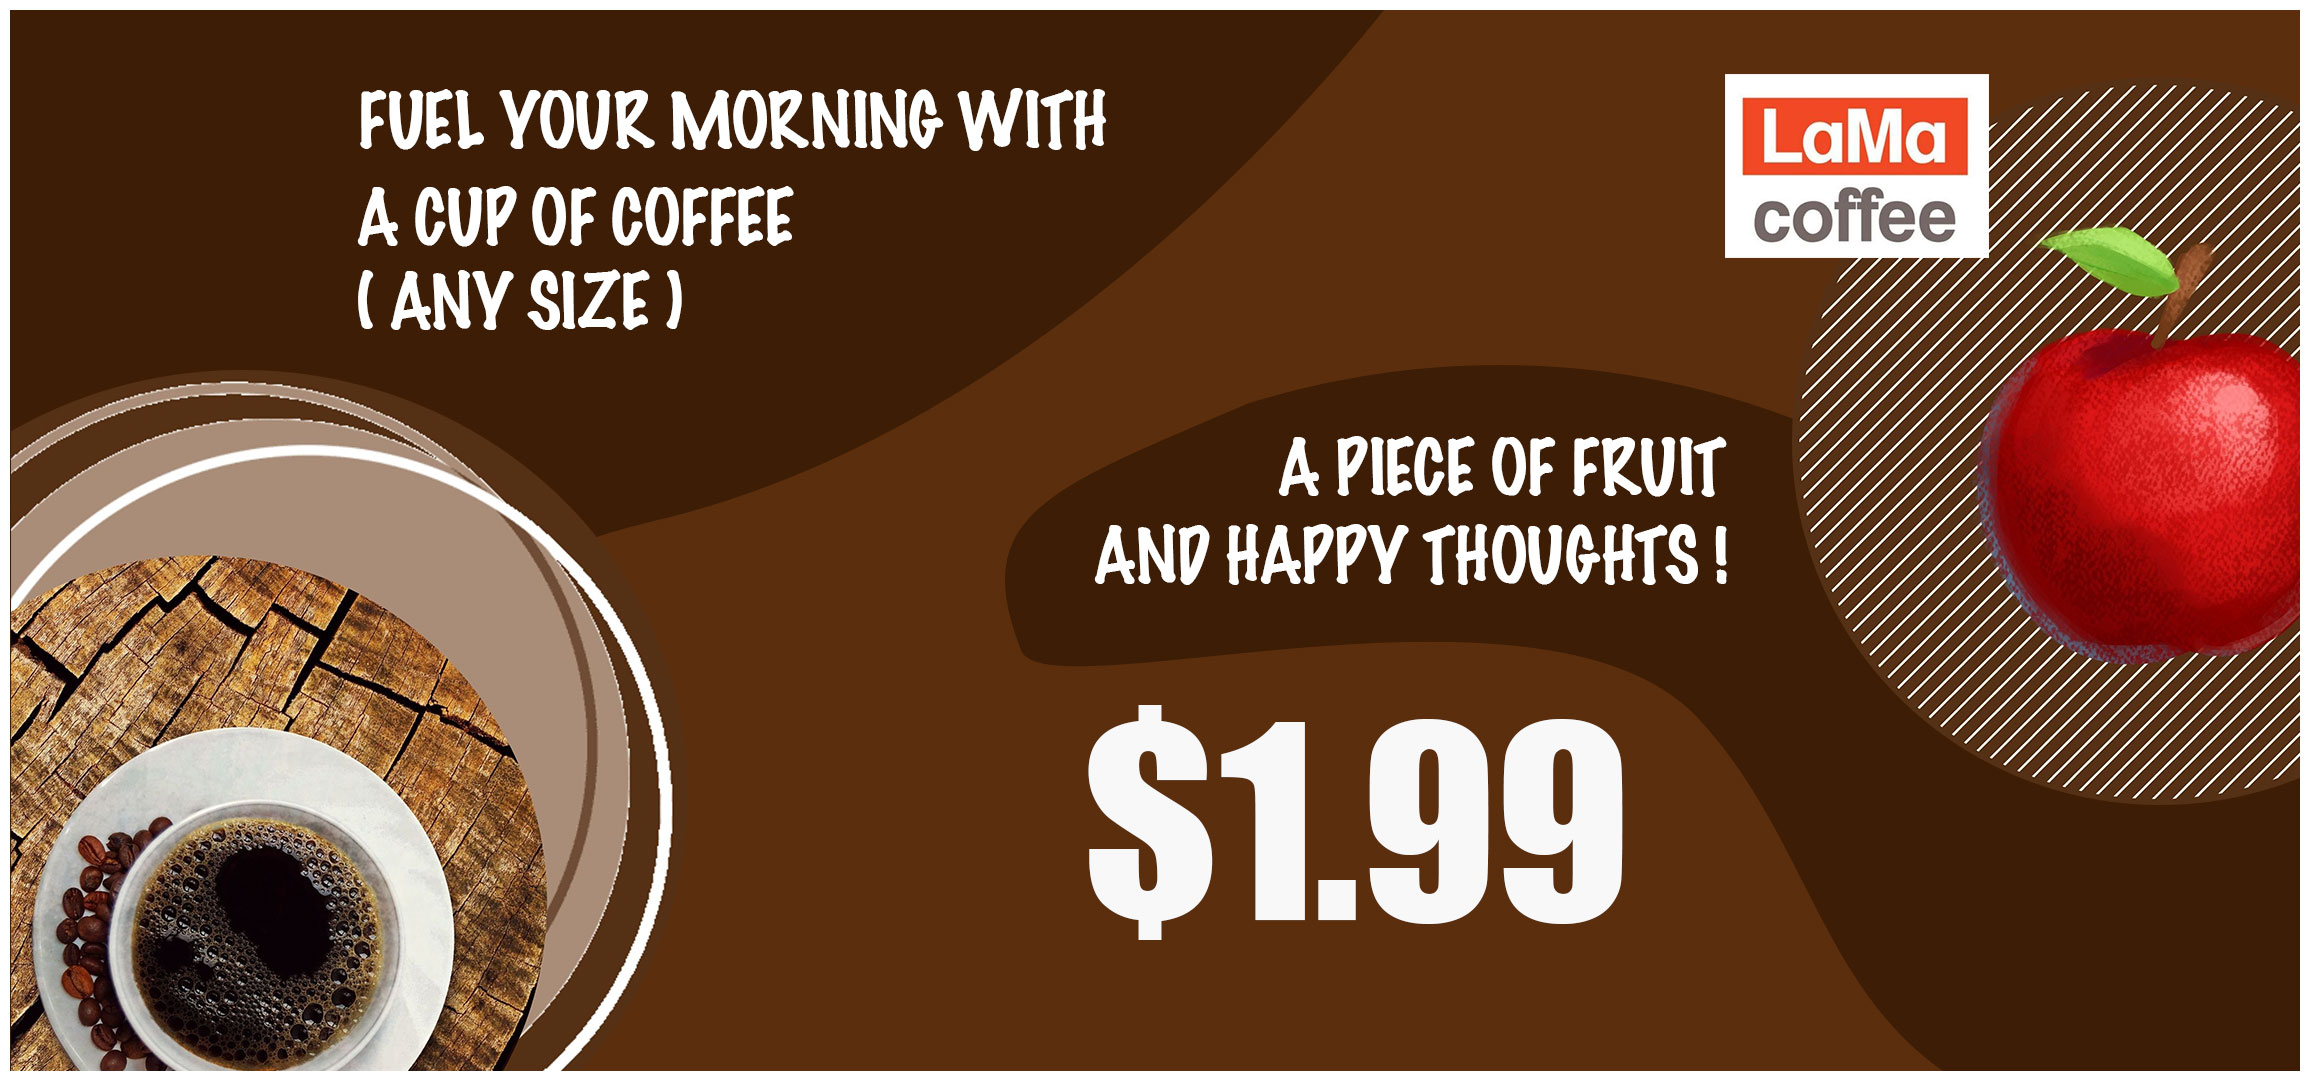 Any Size Coffee with a piece of fruit at just $1.99